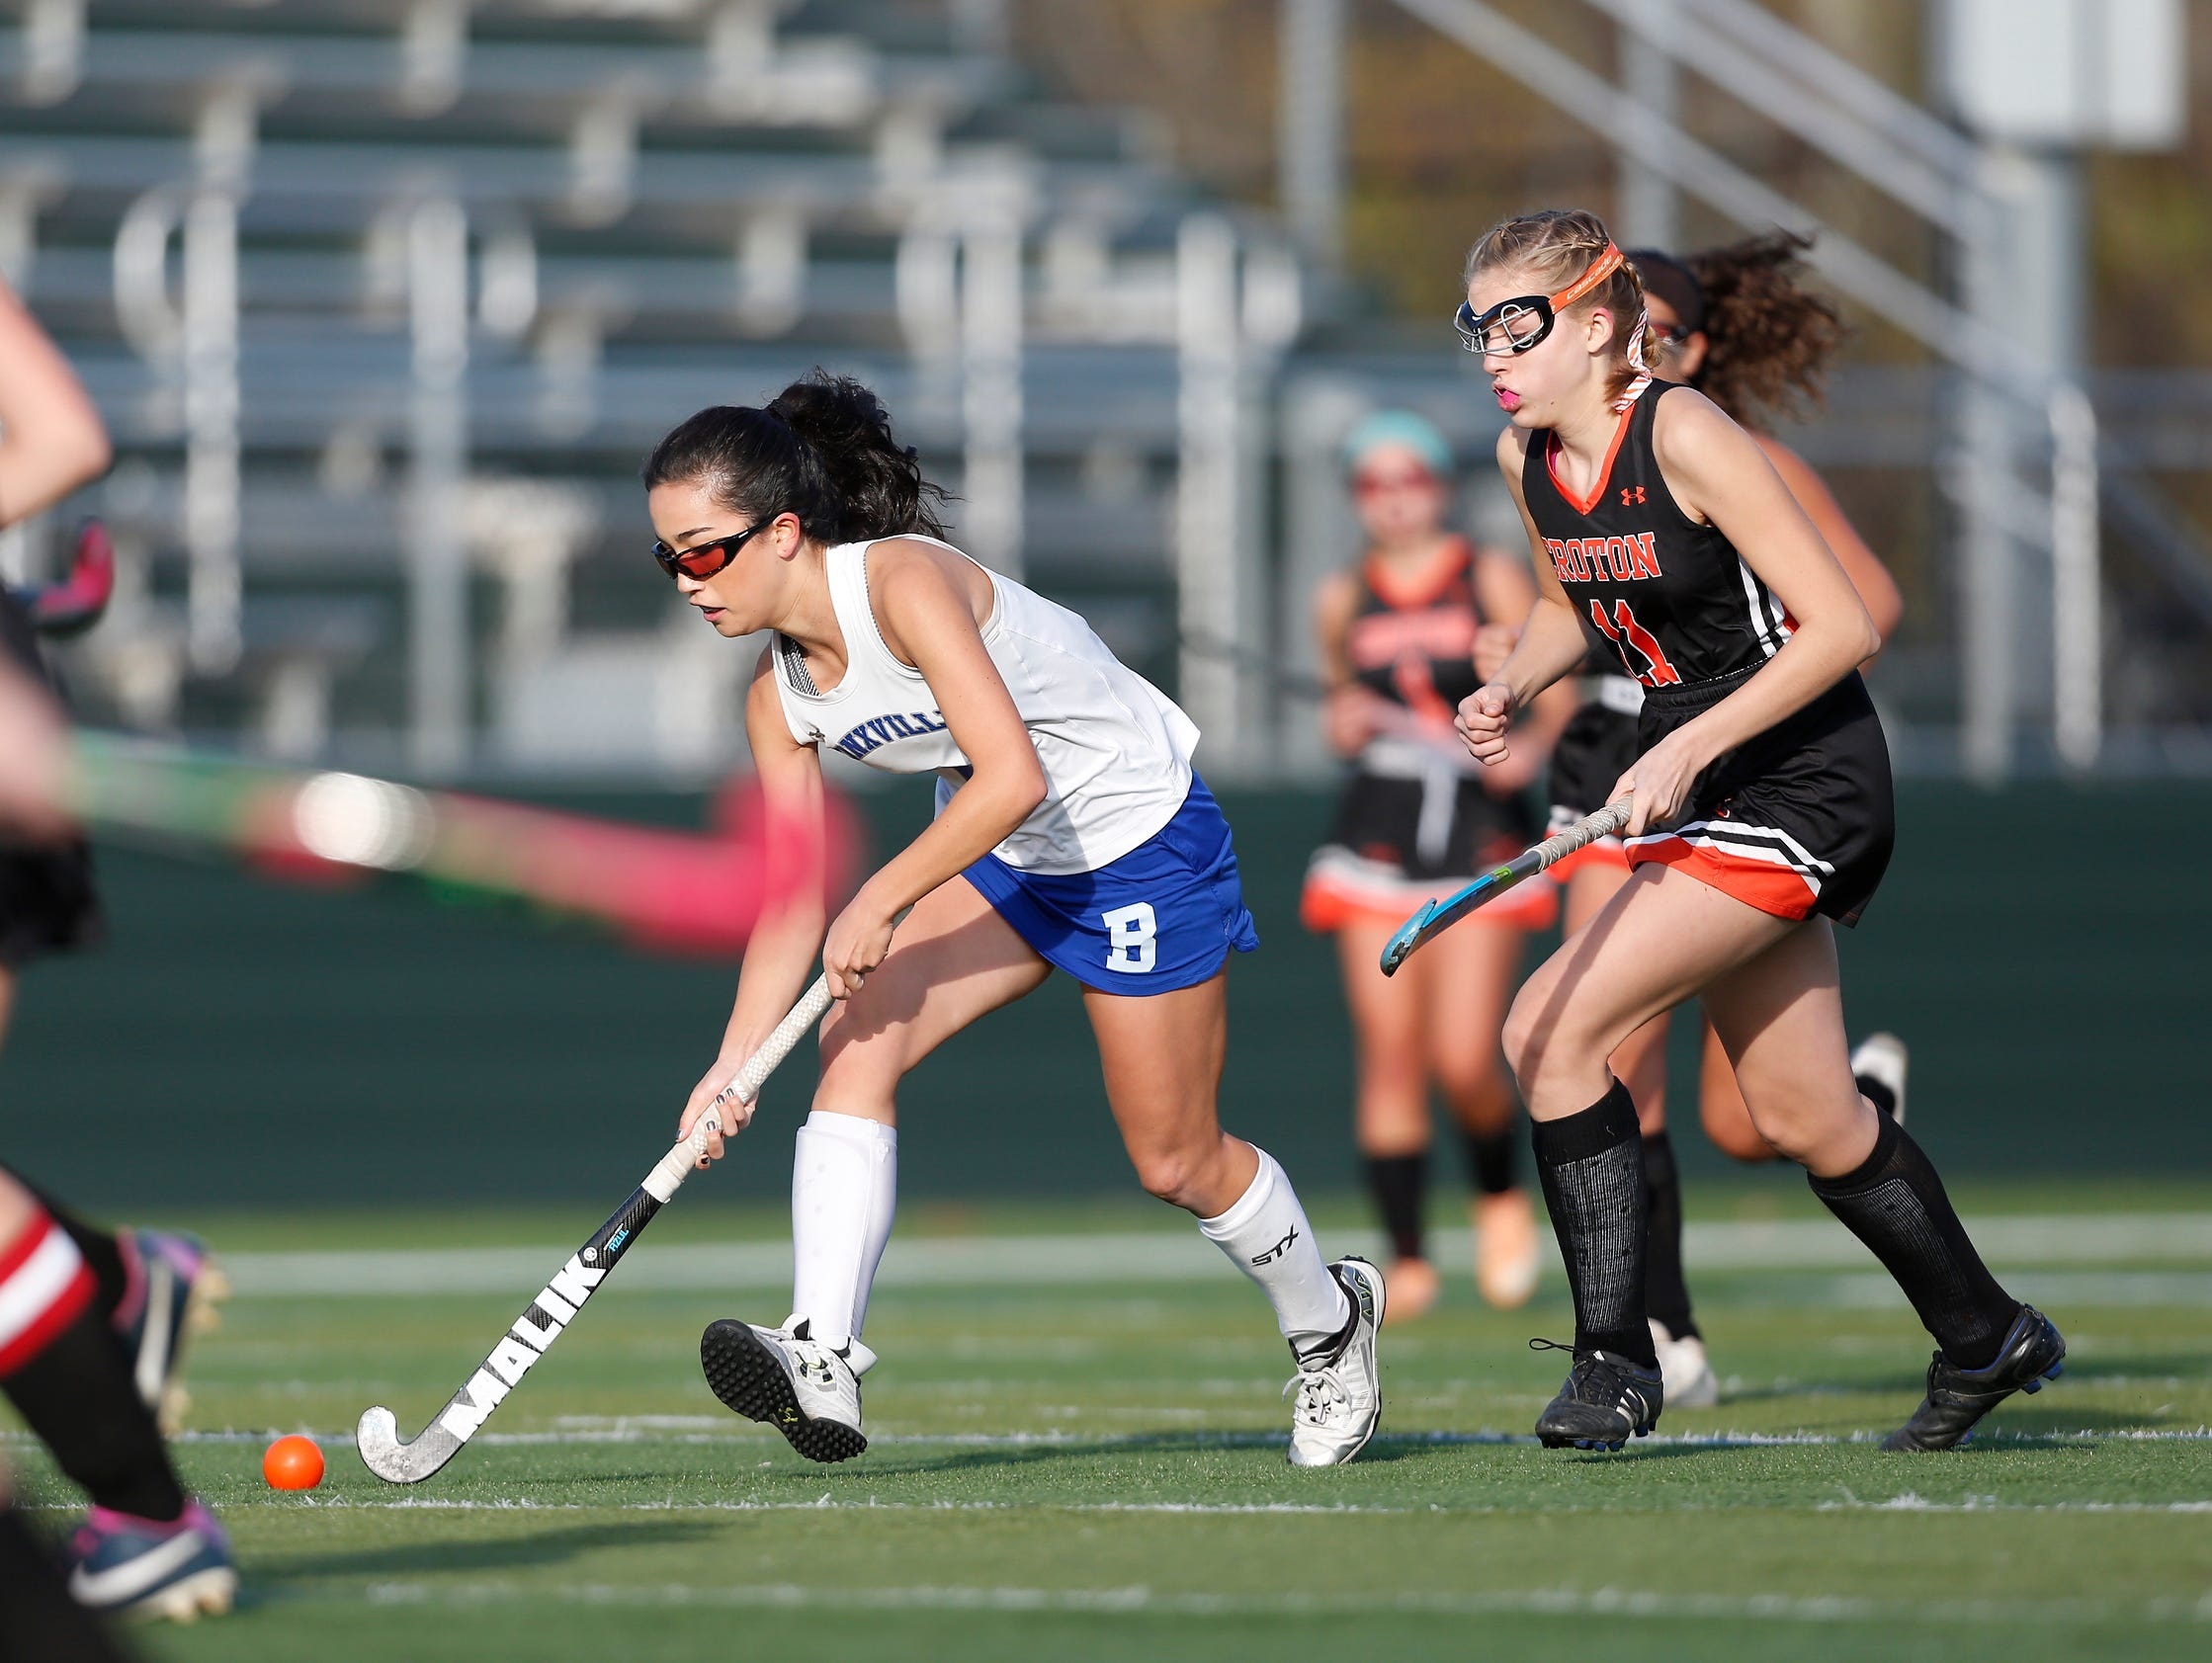 Bronxville's Hanna Weirens (6) advances the ball past Croton's Julia Danett (11) during their 7-1 win in the Class C field hockey sectiion finals at Brewster High School on Tuesday, November 1, 2016.